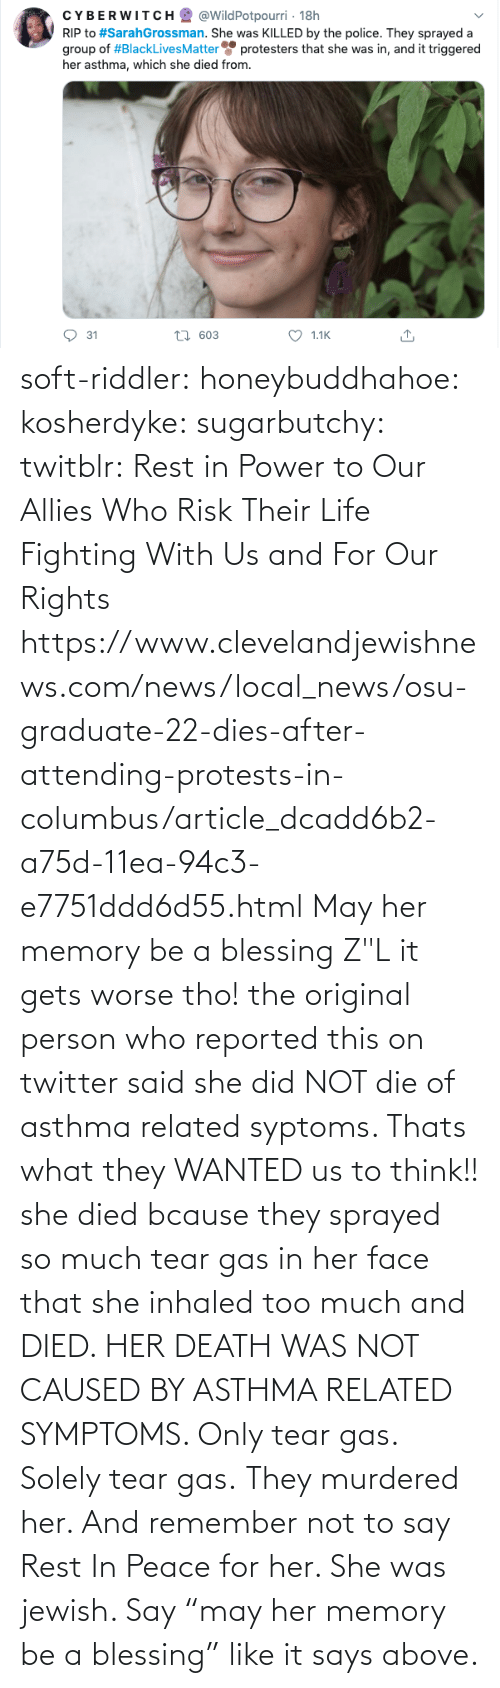 "Rights: soft-riddler:  honeybuddhahoe:  kosherdyke:  sugarbutchy:  twitblr: Rest in Power to Our Allies Who Risk Their Life Fighting With Us and For Our Rights https://www.clevelandjewishnews.com/news/local_news/osu-graduate-22-dies-after-attending-protests-in-columbus/article_dcadd6b2-a75d-11ea-94c3-e7751ddd6d55.html    May her memory be a blessing Z""L  it gets worse tho! the original person who reported this on twitter said she did NOT die of asthma related syptoms. Thats what they WANTED us to think!! she died bcause they sprayed so much tear gas in her face that she inhaled too much and DIED. HER DEATH WAS NOT CAUSED BY ASTHMA RELATED SYMPTOMS. Only tear gas. Solely tear gas. They murdered her.     And remember not to say Rest In Peace for her. She was jewish. Say ""may her memory be a blessing"" like it says above."